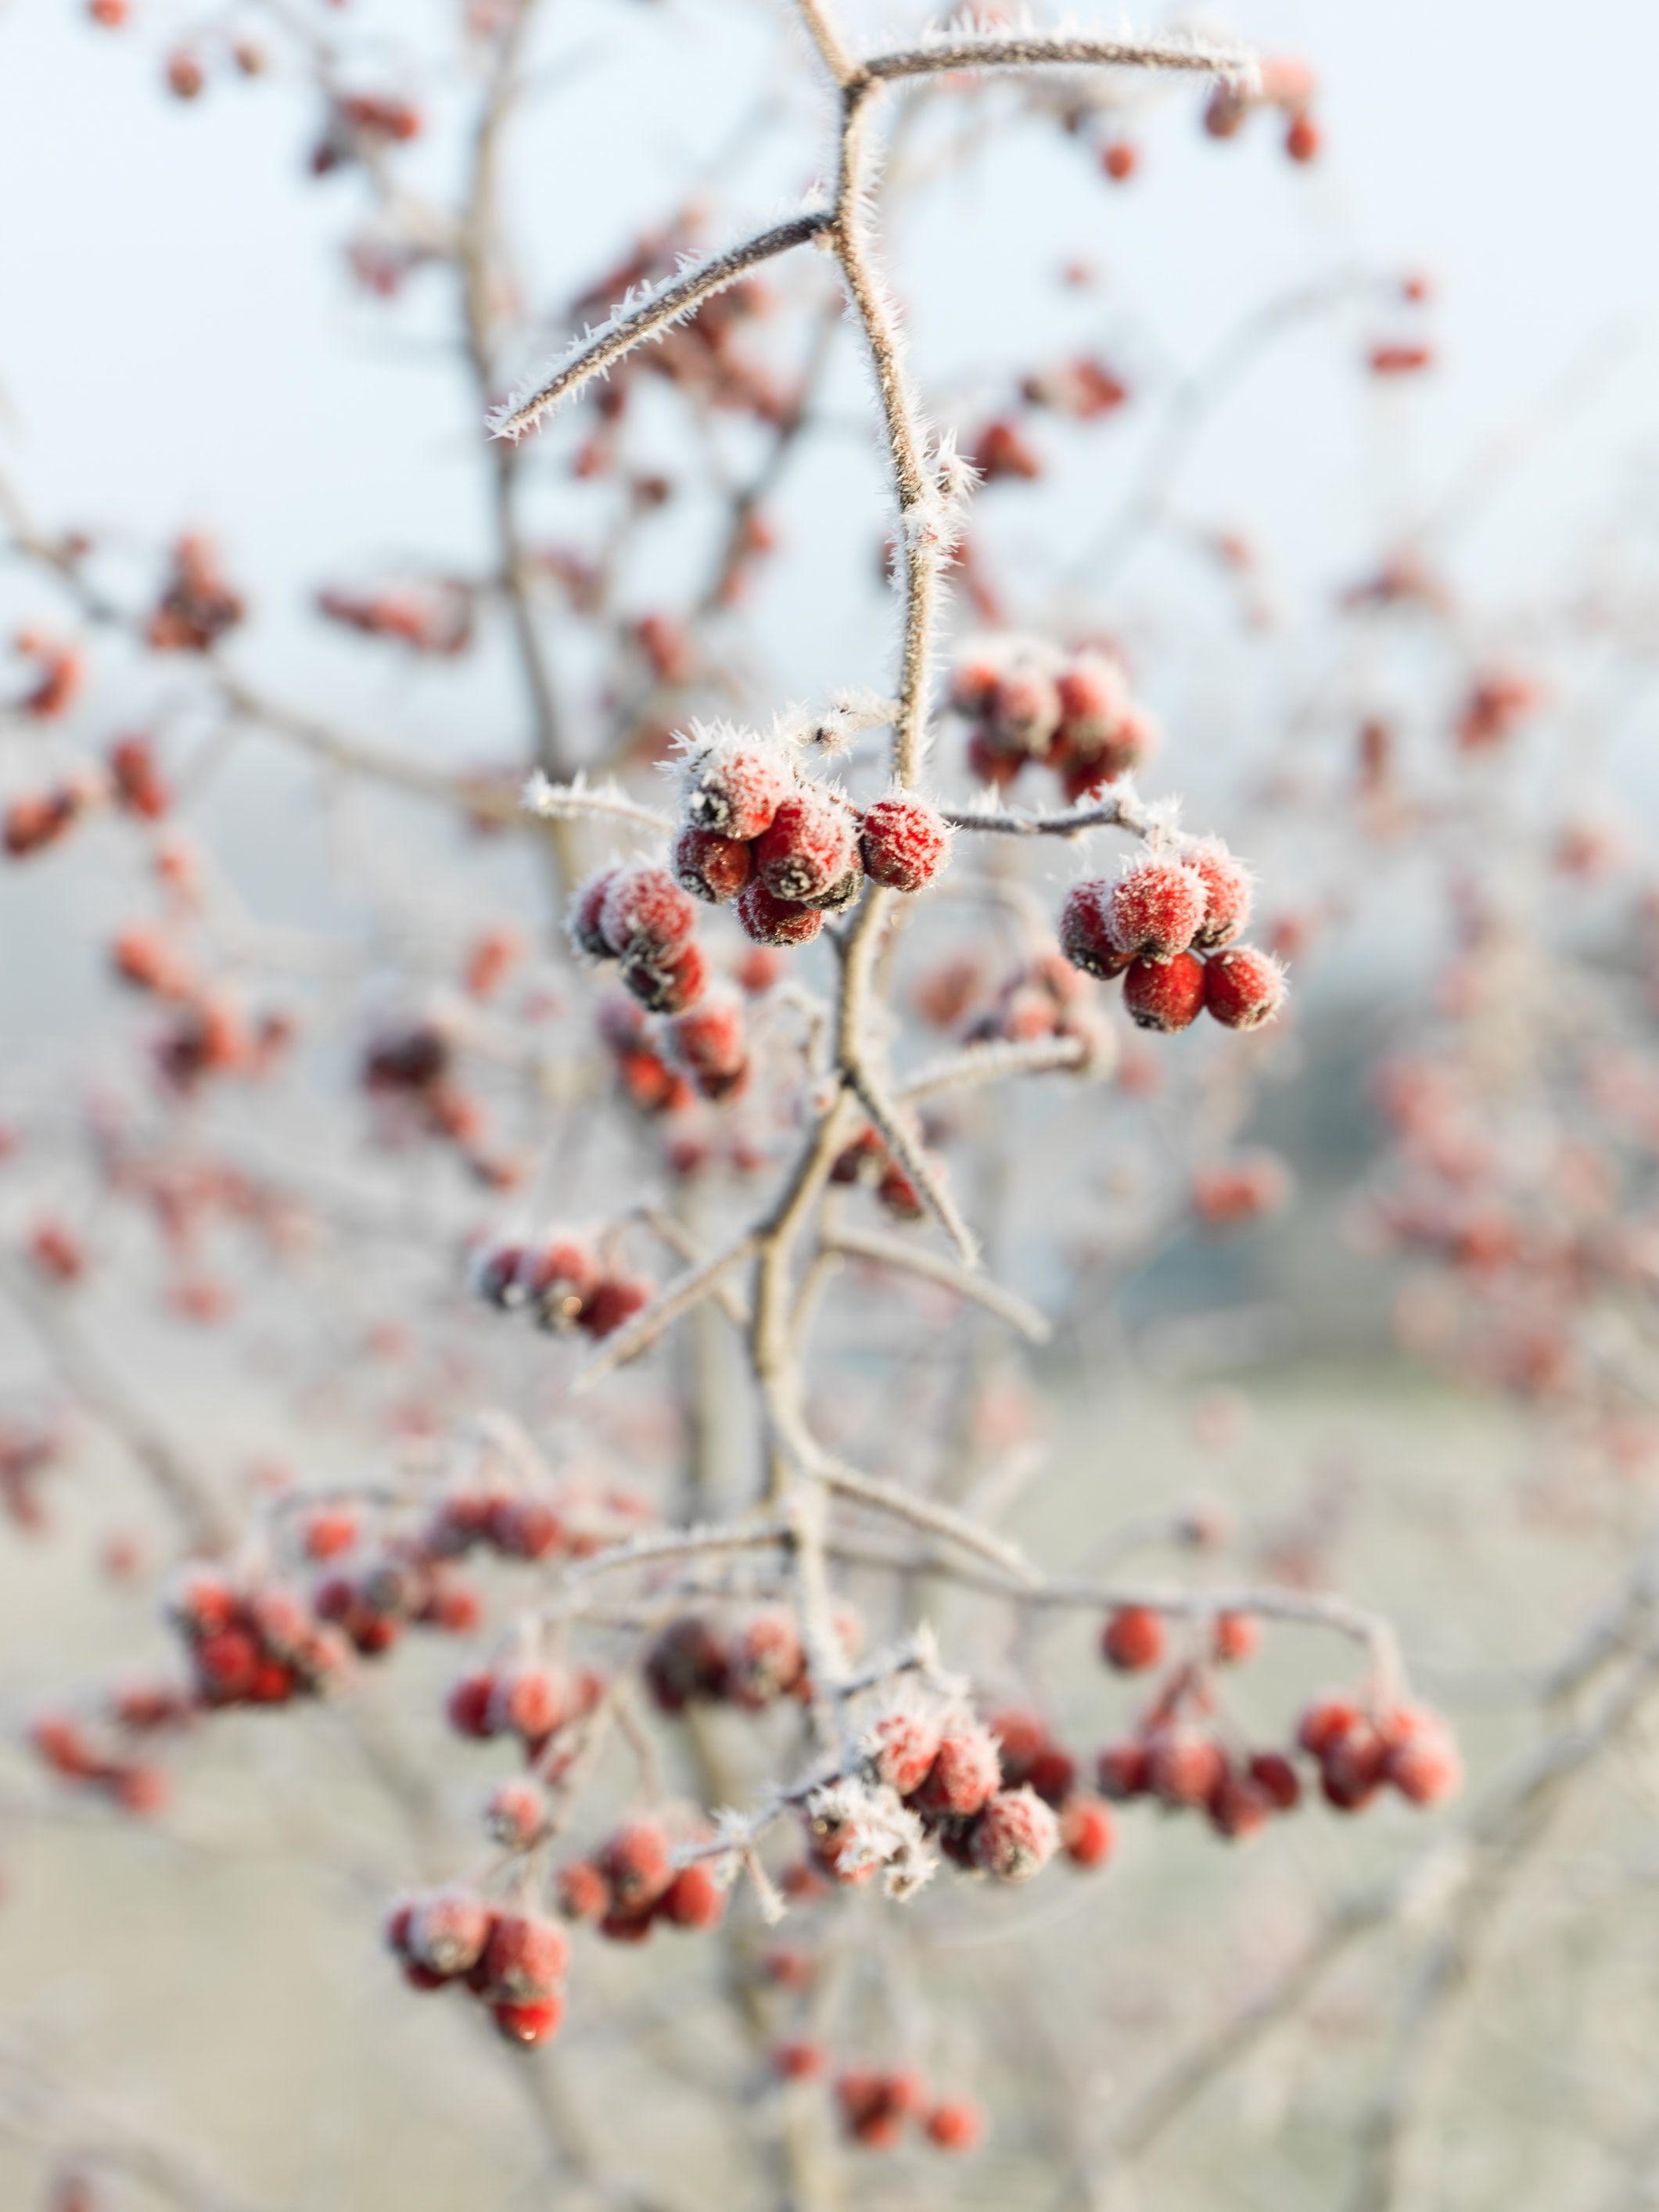 selective focus photo of bunch of berry